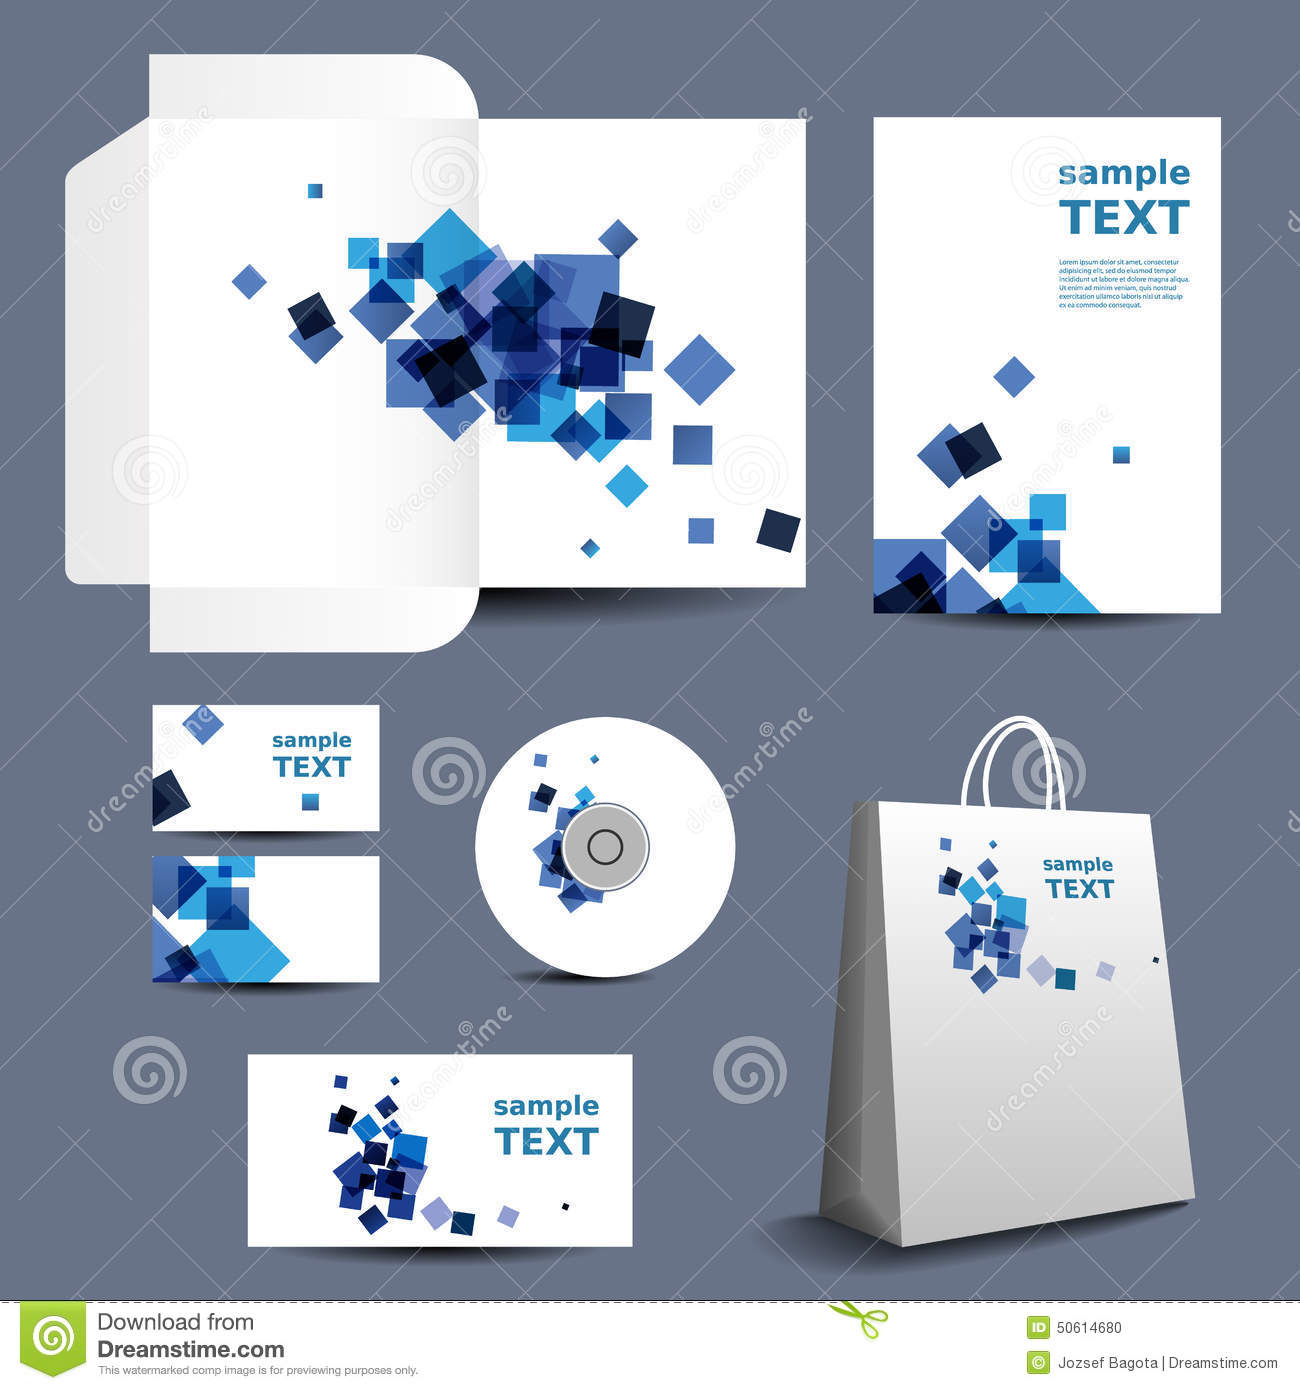 Stationery Template, Corporate Image Design With Abstract